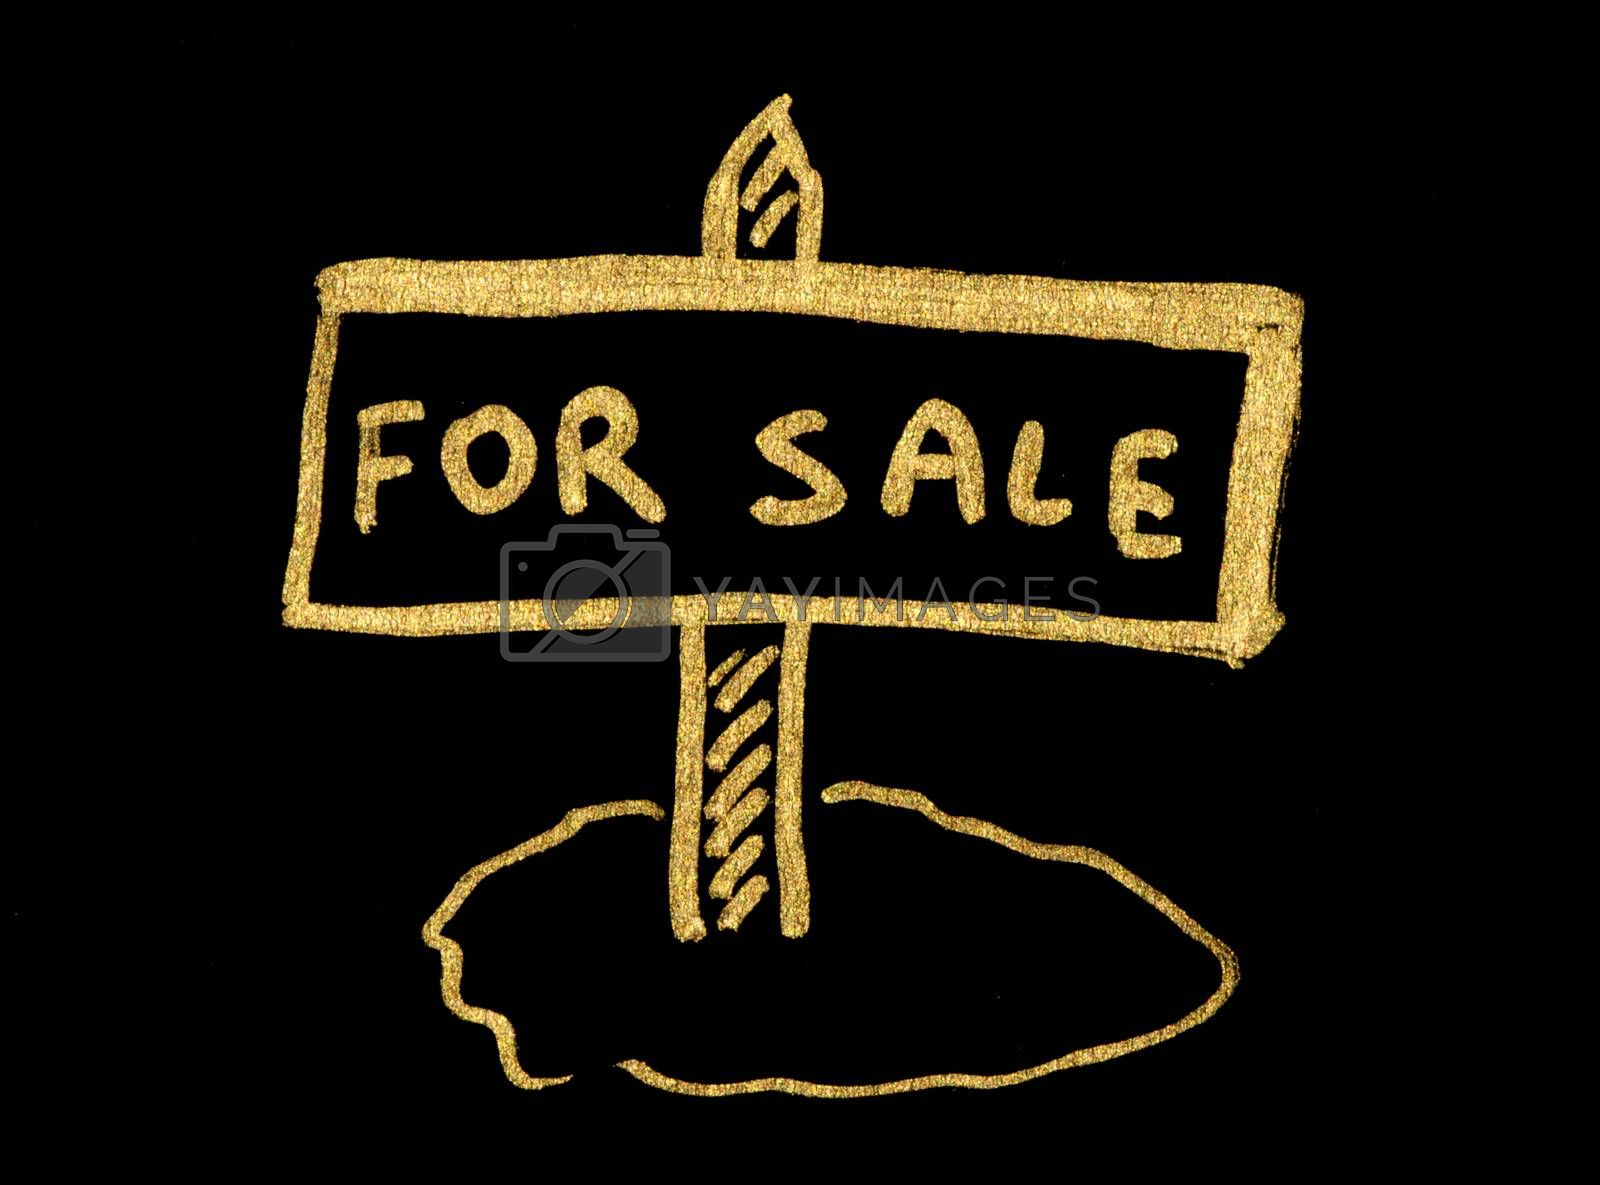 For sale gold color text over black